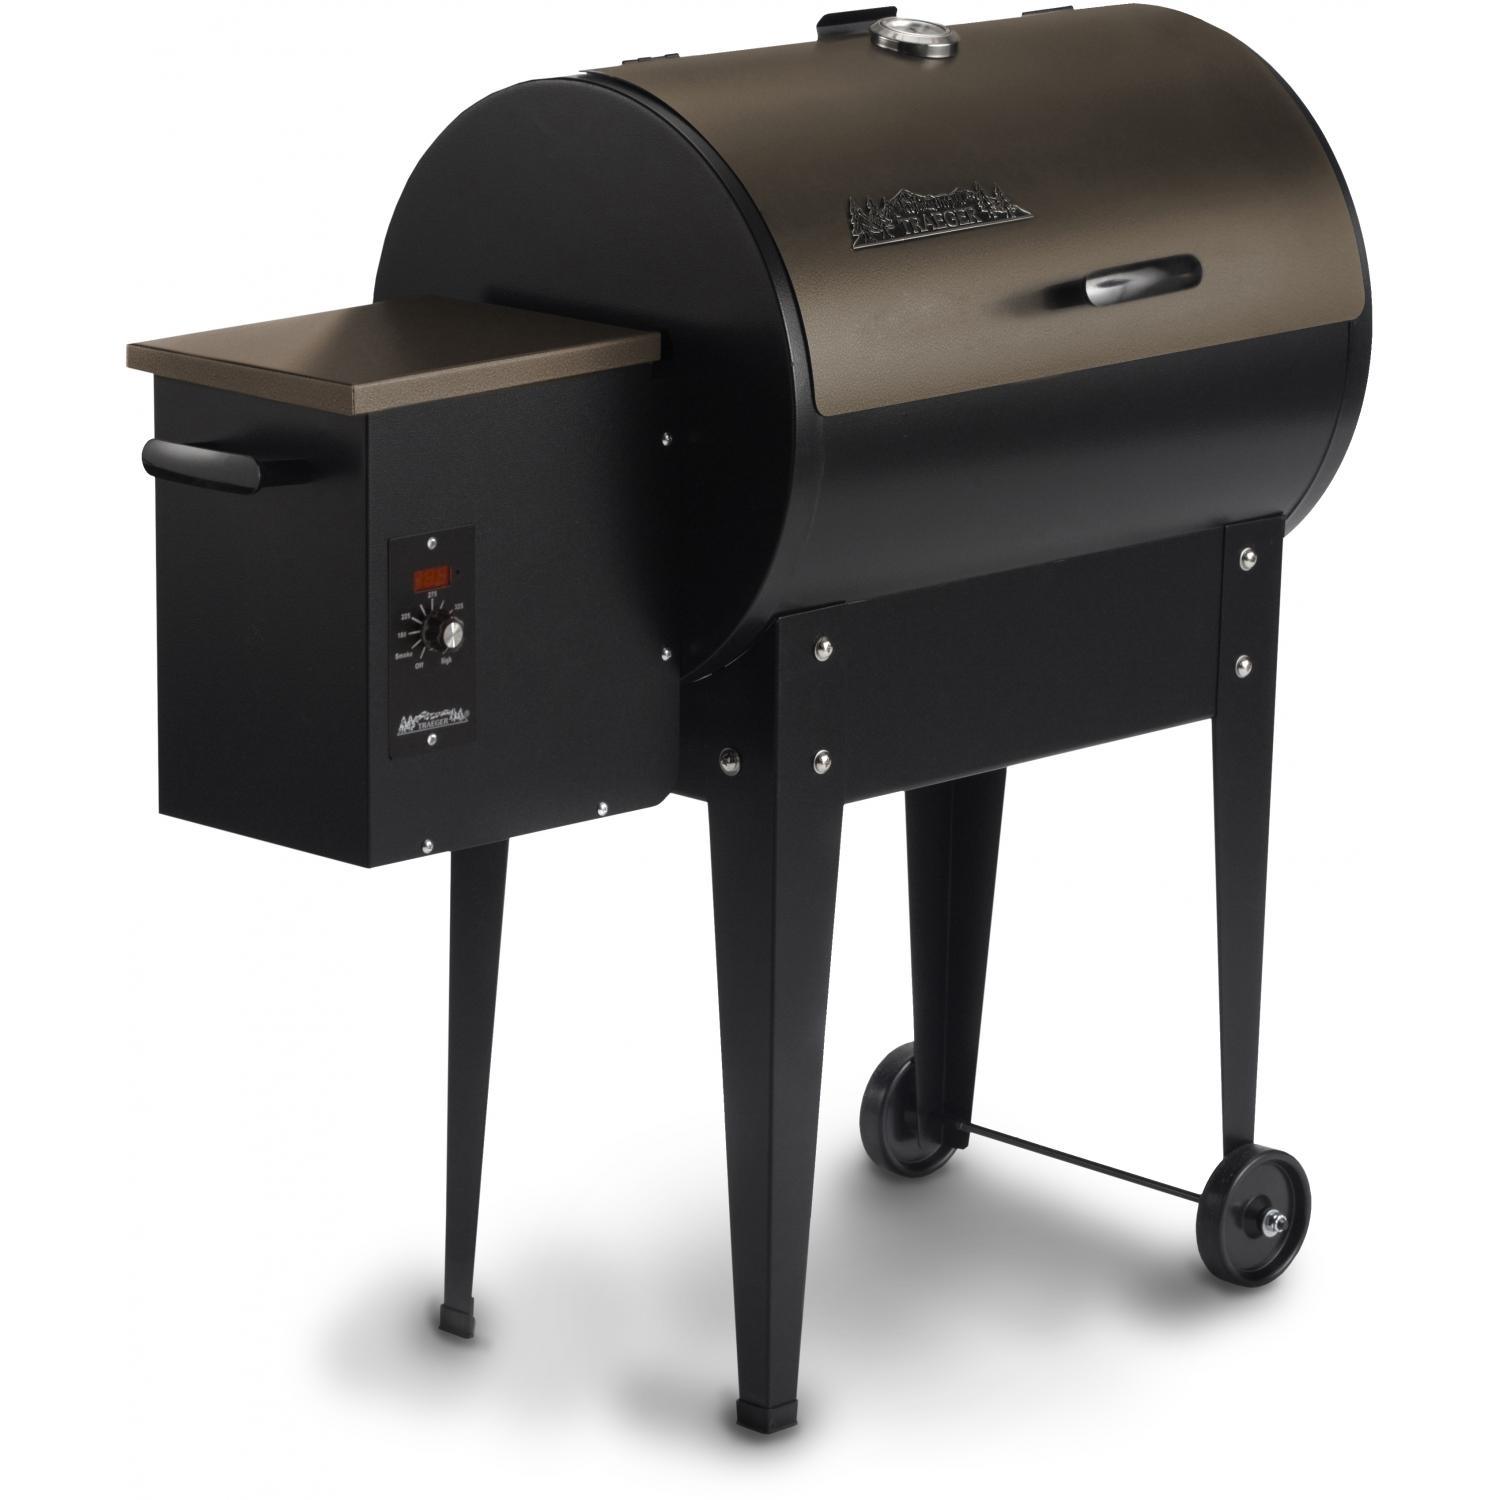 The Woodwind Classic pellet grill brings easy and delicious BBQ right to your back patio. Grill, smoke, bake, roast, braise, or barbecue with incredible wood-fired flavor.